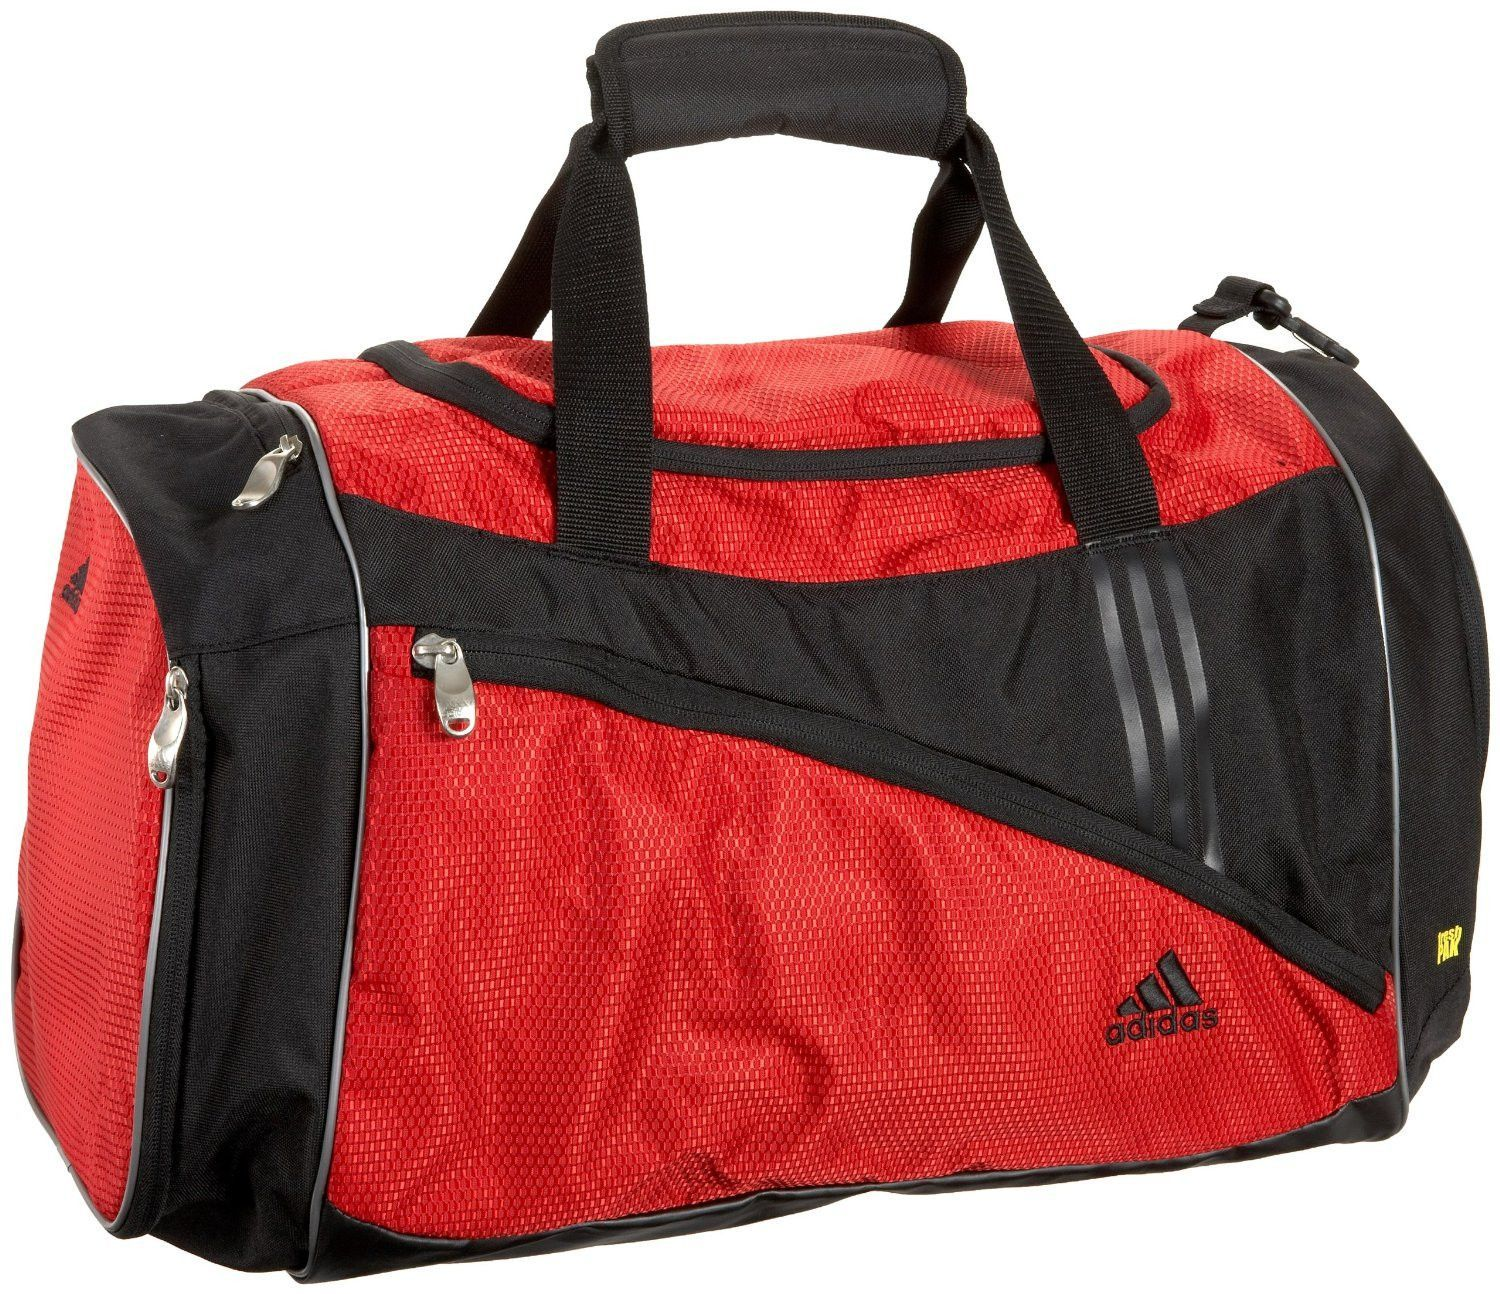 c529125e45 This adidas Scorch Team Duffel Bag is made to carry everything you need for  those big tournaments and games. It has a large main compartment with a  sturdy ...